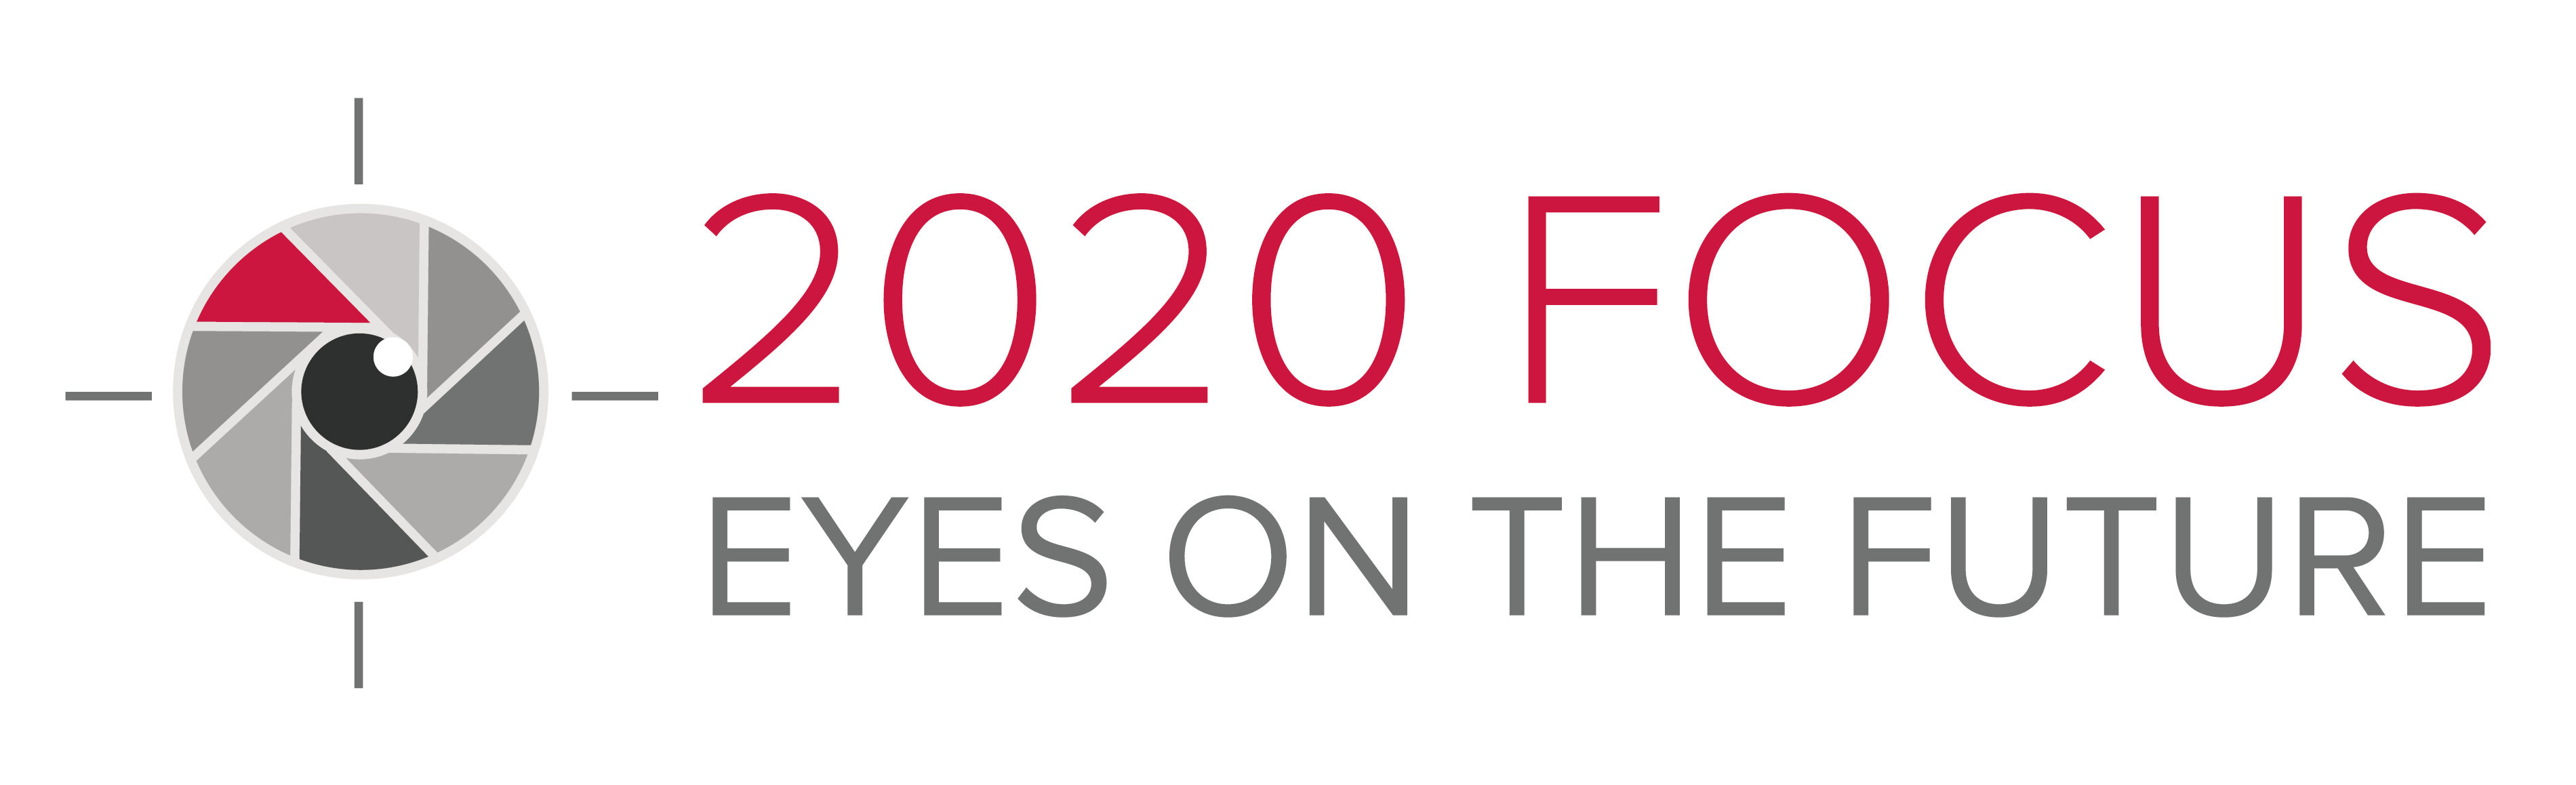 2020 Focus - Eyes on the future